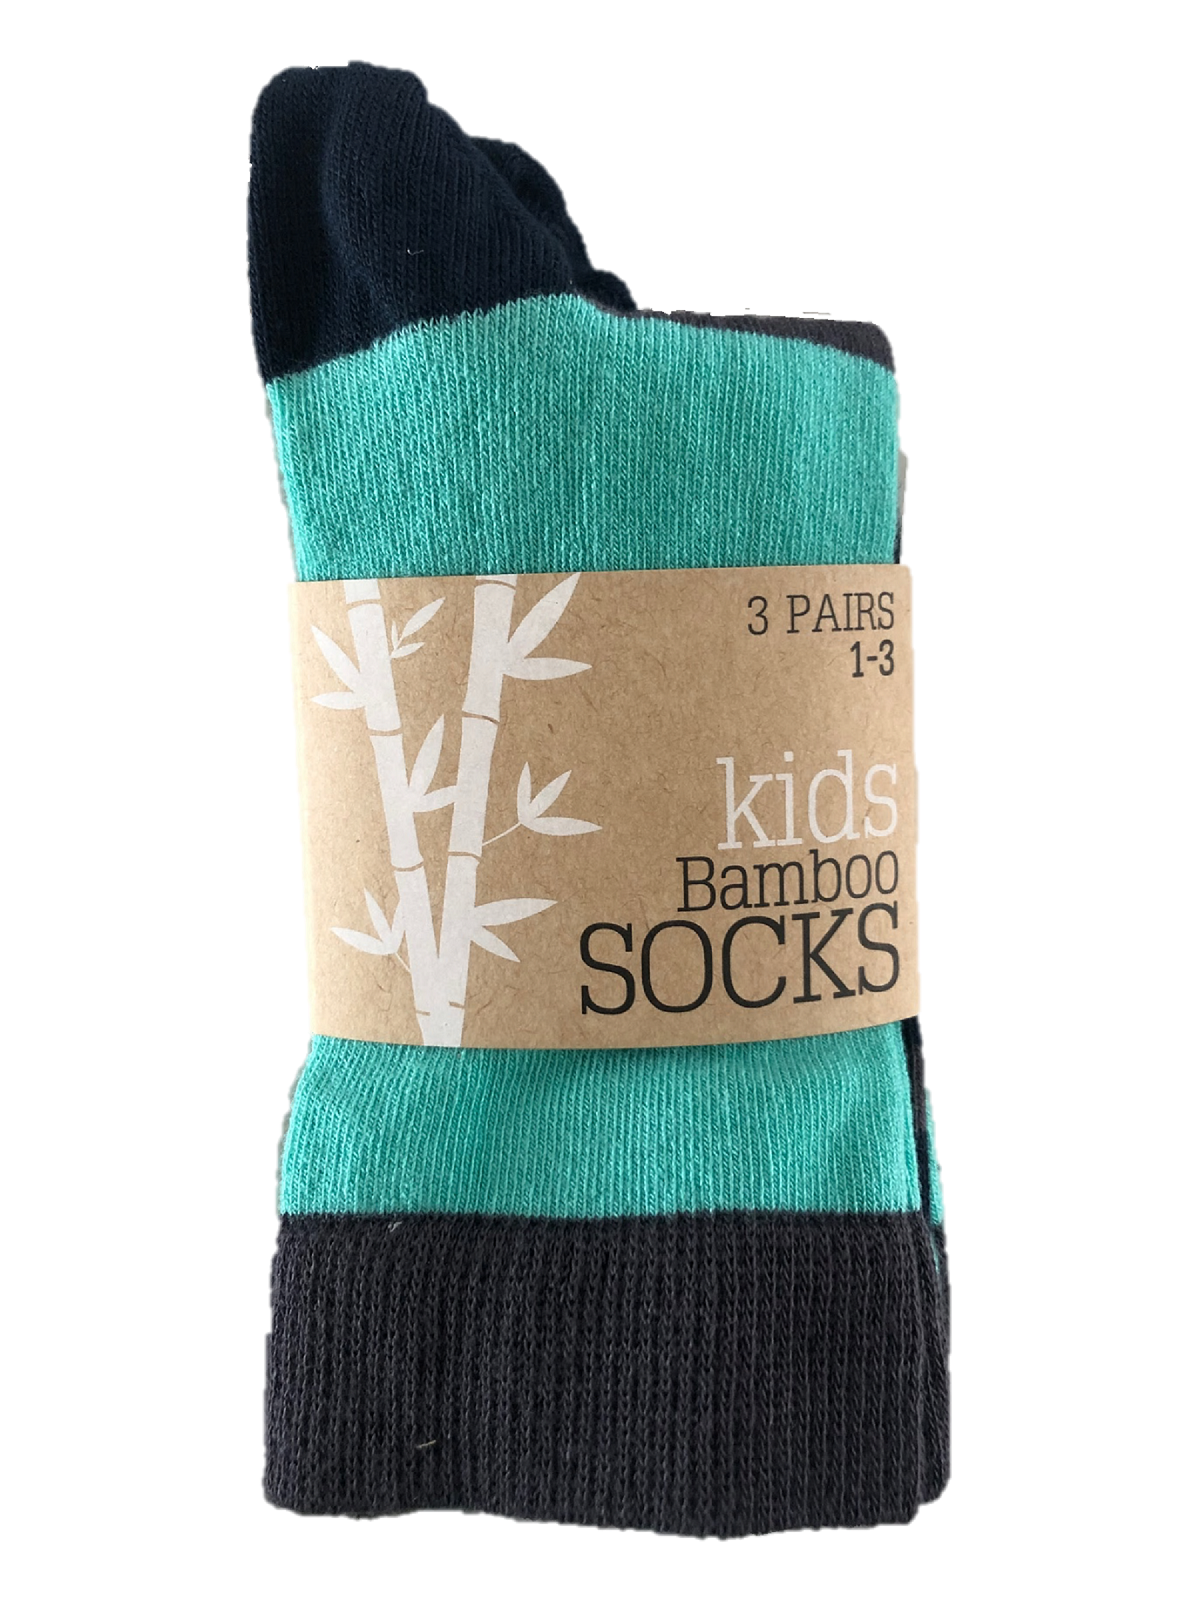 Kids supersoft bamboo socks tri pack